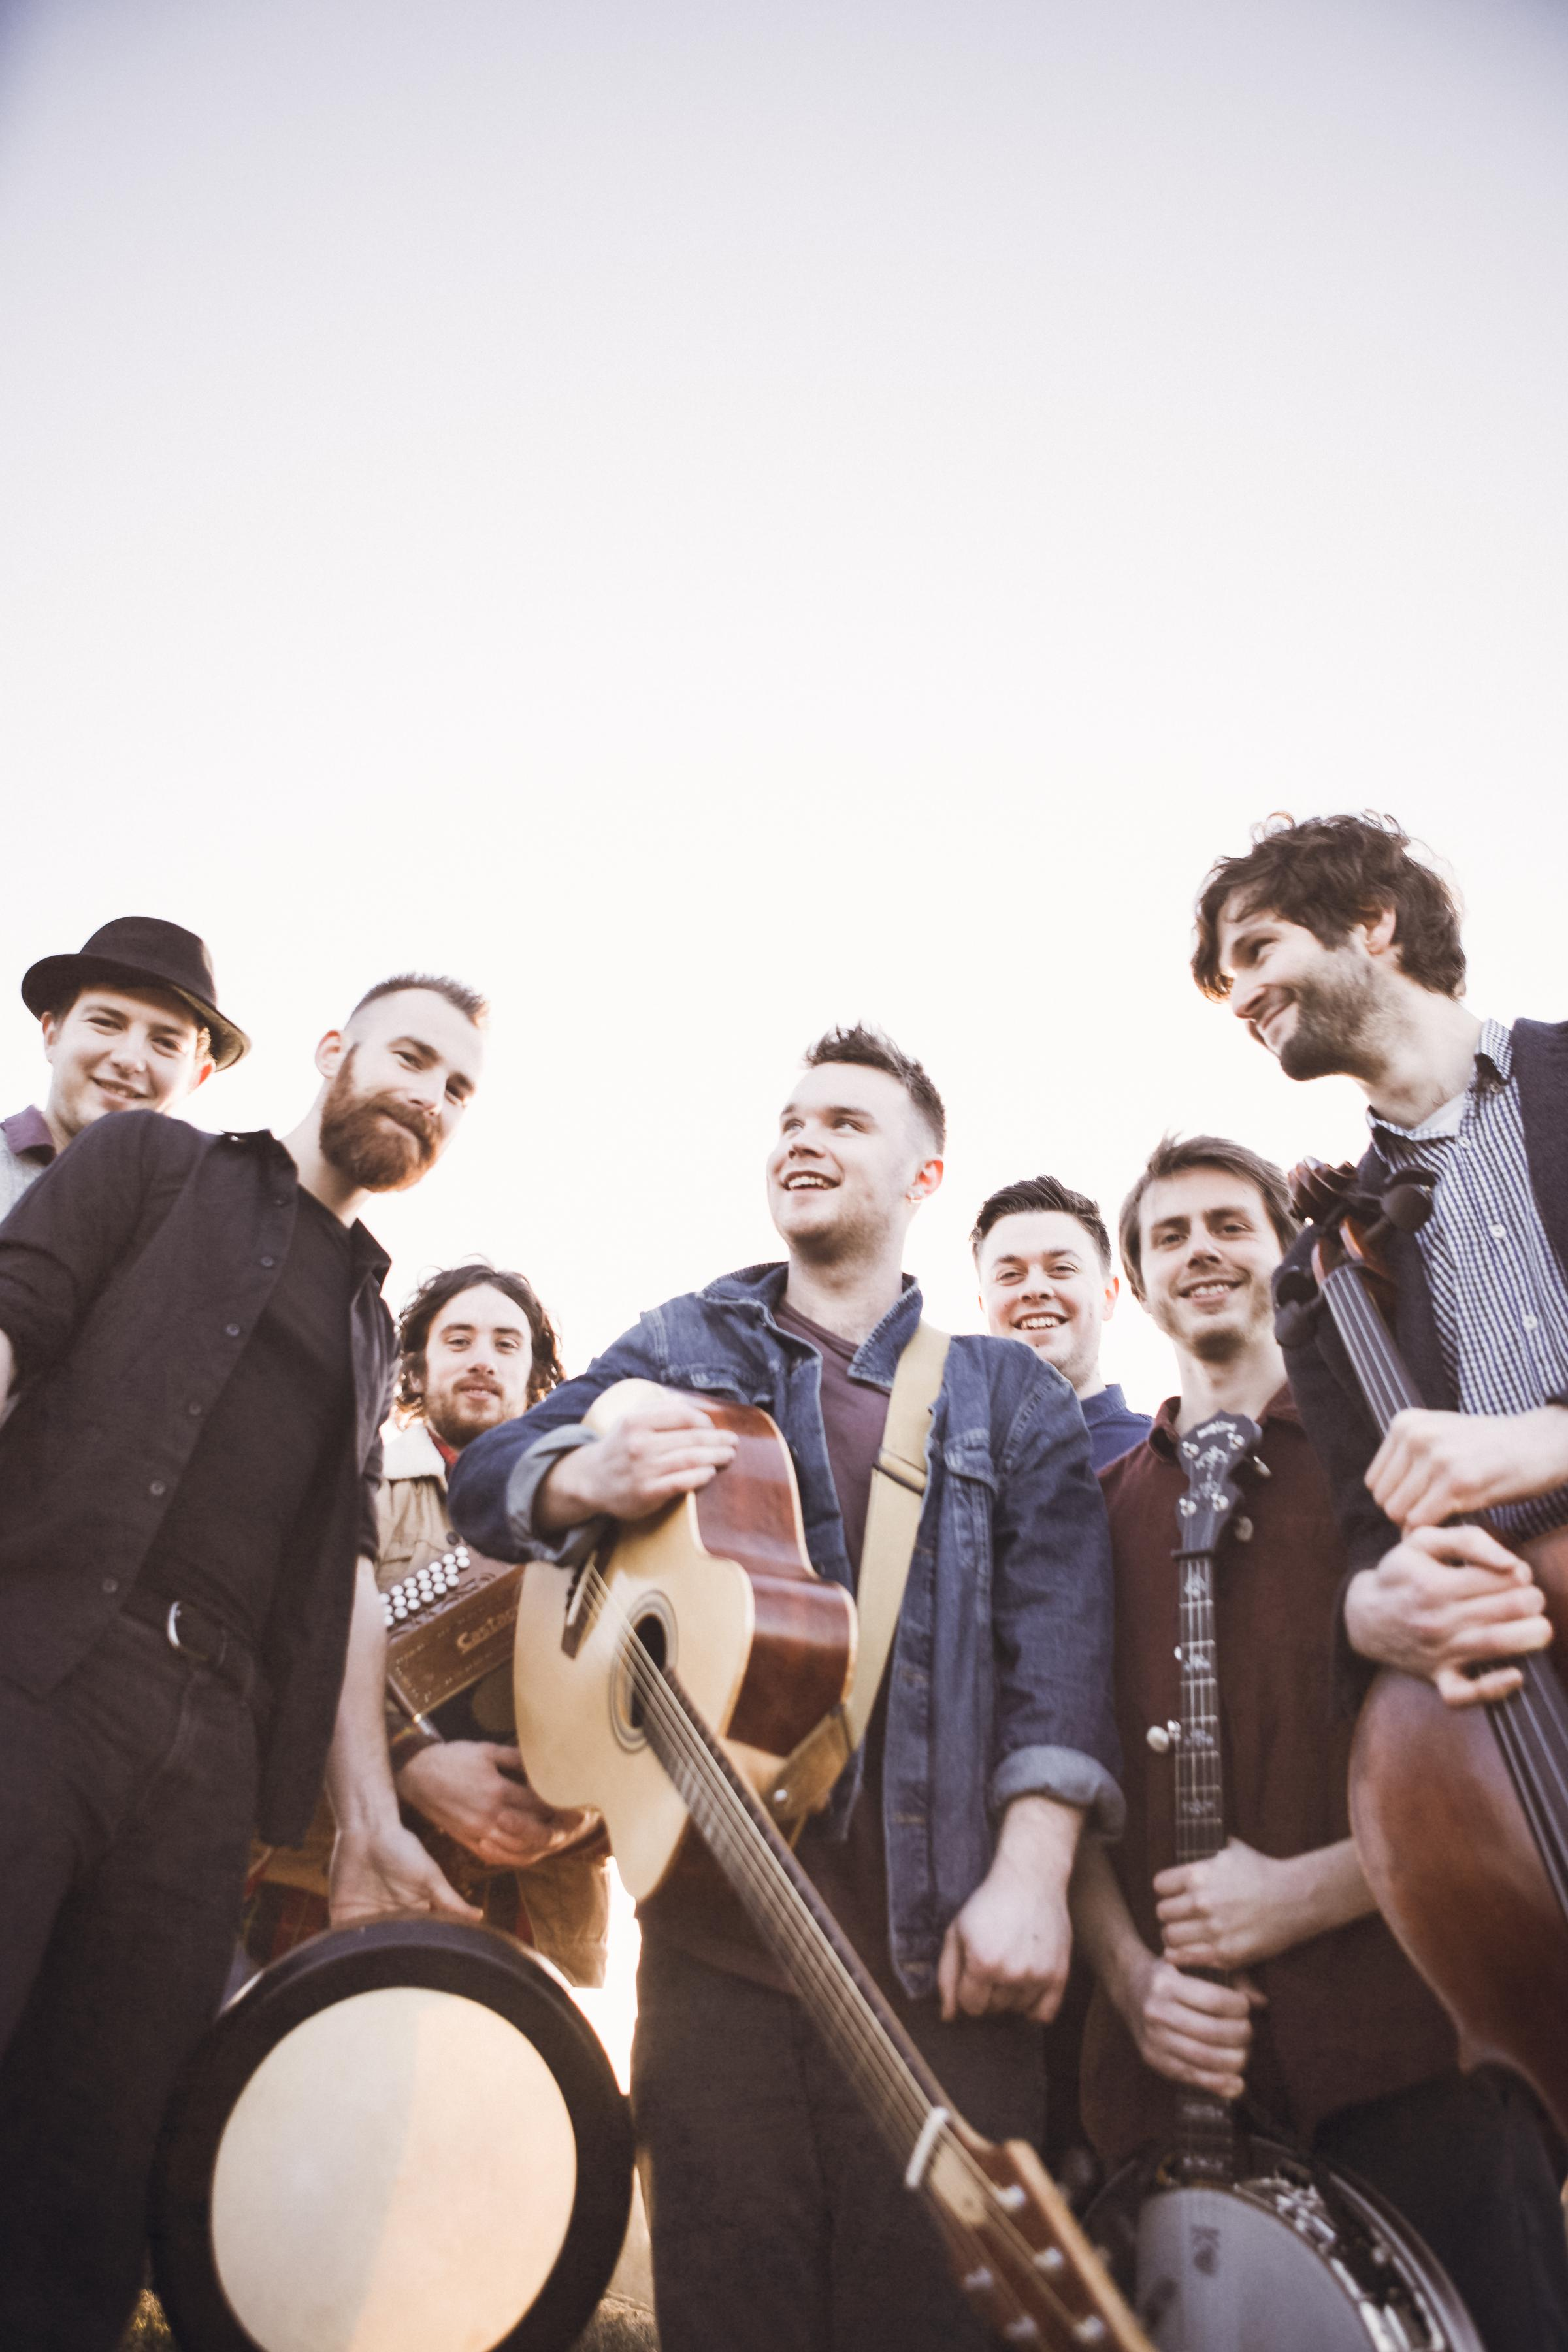 Dorchester Festival: Sam Kelly & The Lost Boys / Jackie Oates